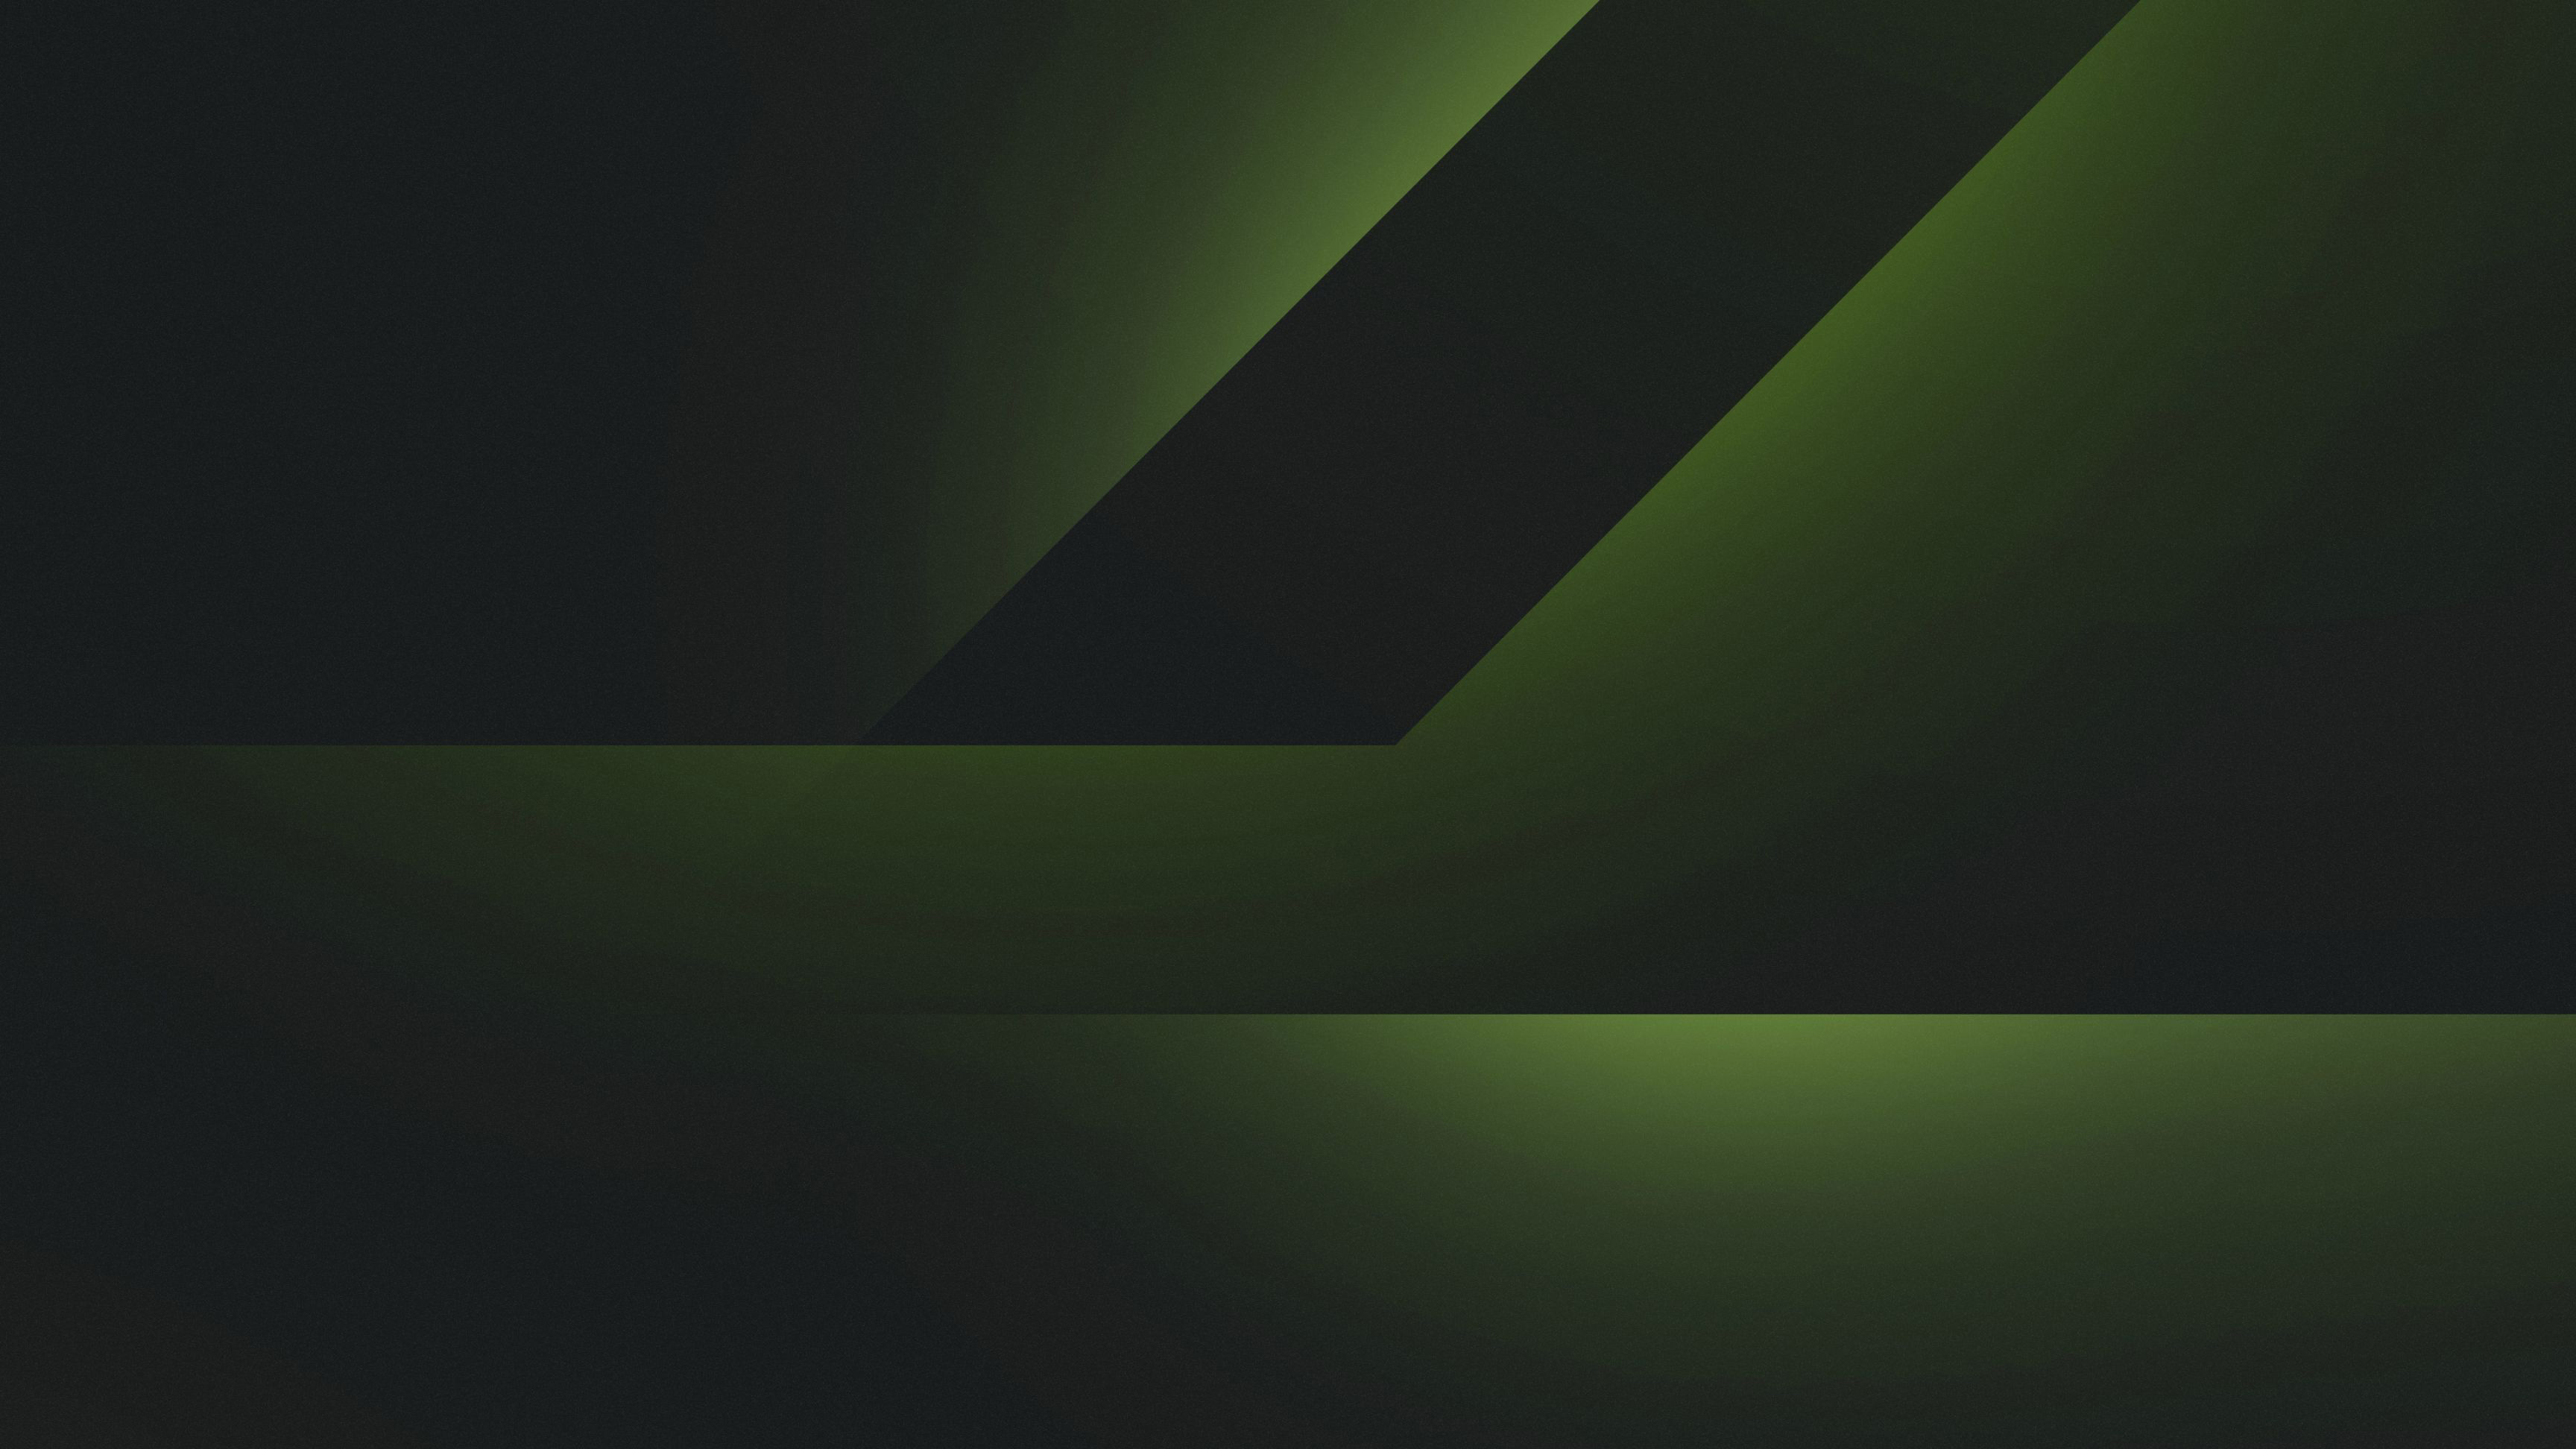 Abstract Dark Green 4k Hd Abstract 4k Wallpapers Images